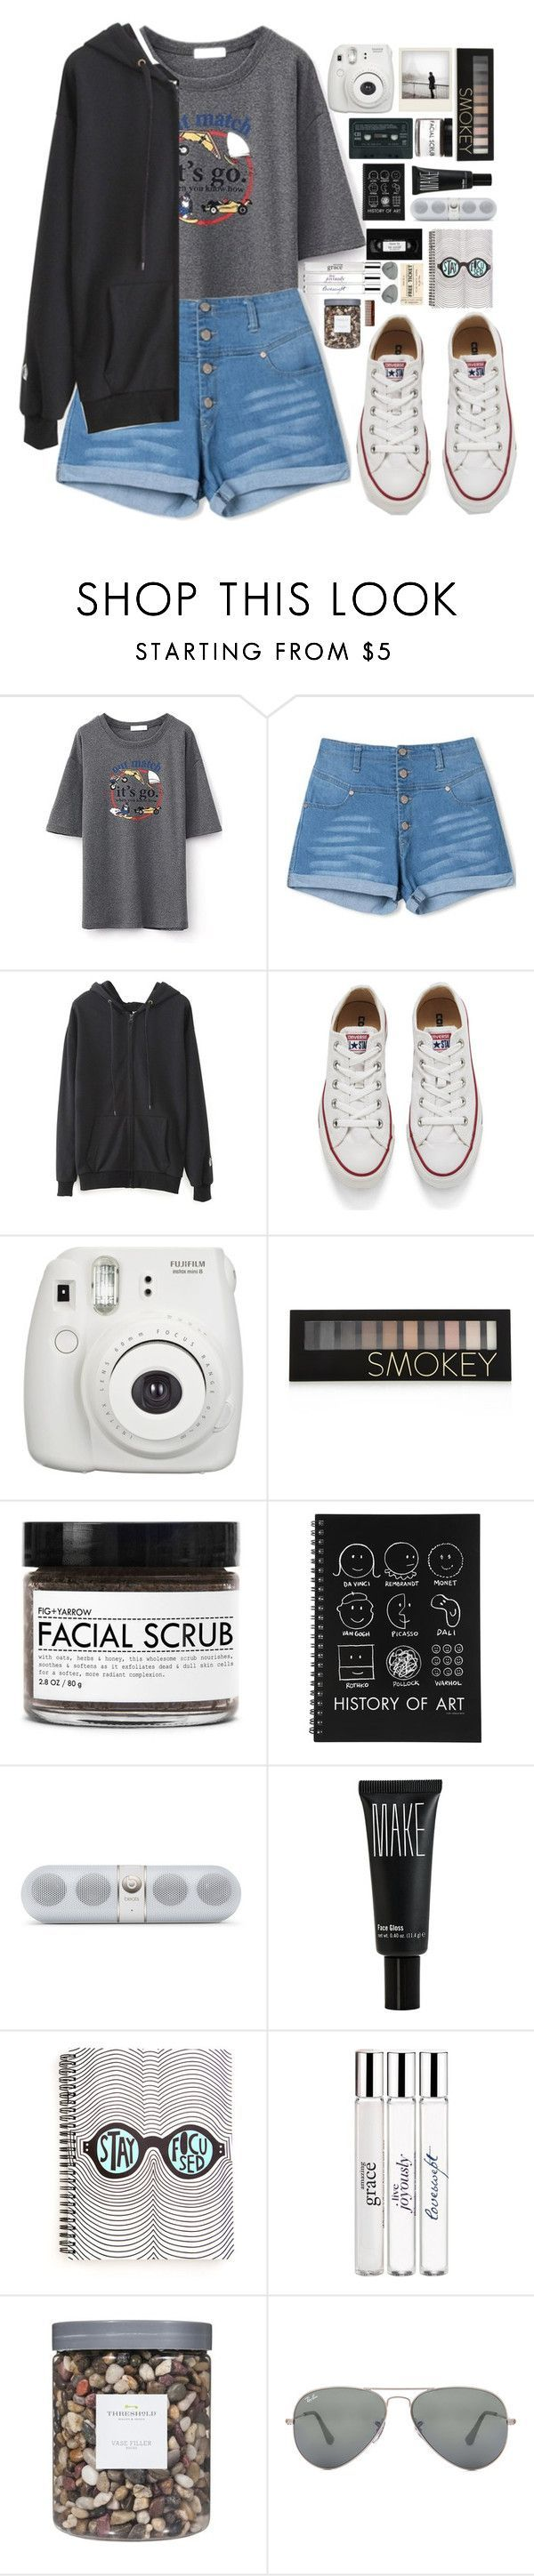 """""""beautifulhalo"""" by ellac9914 ❤ liked on Polyvore featuring WithChic, Converse, Fujifilm, Polaroid, Forever 21, Fig+Yarrow, Make, philosophy, Threshold and Ray-Ban"""